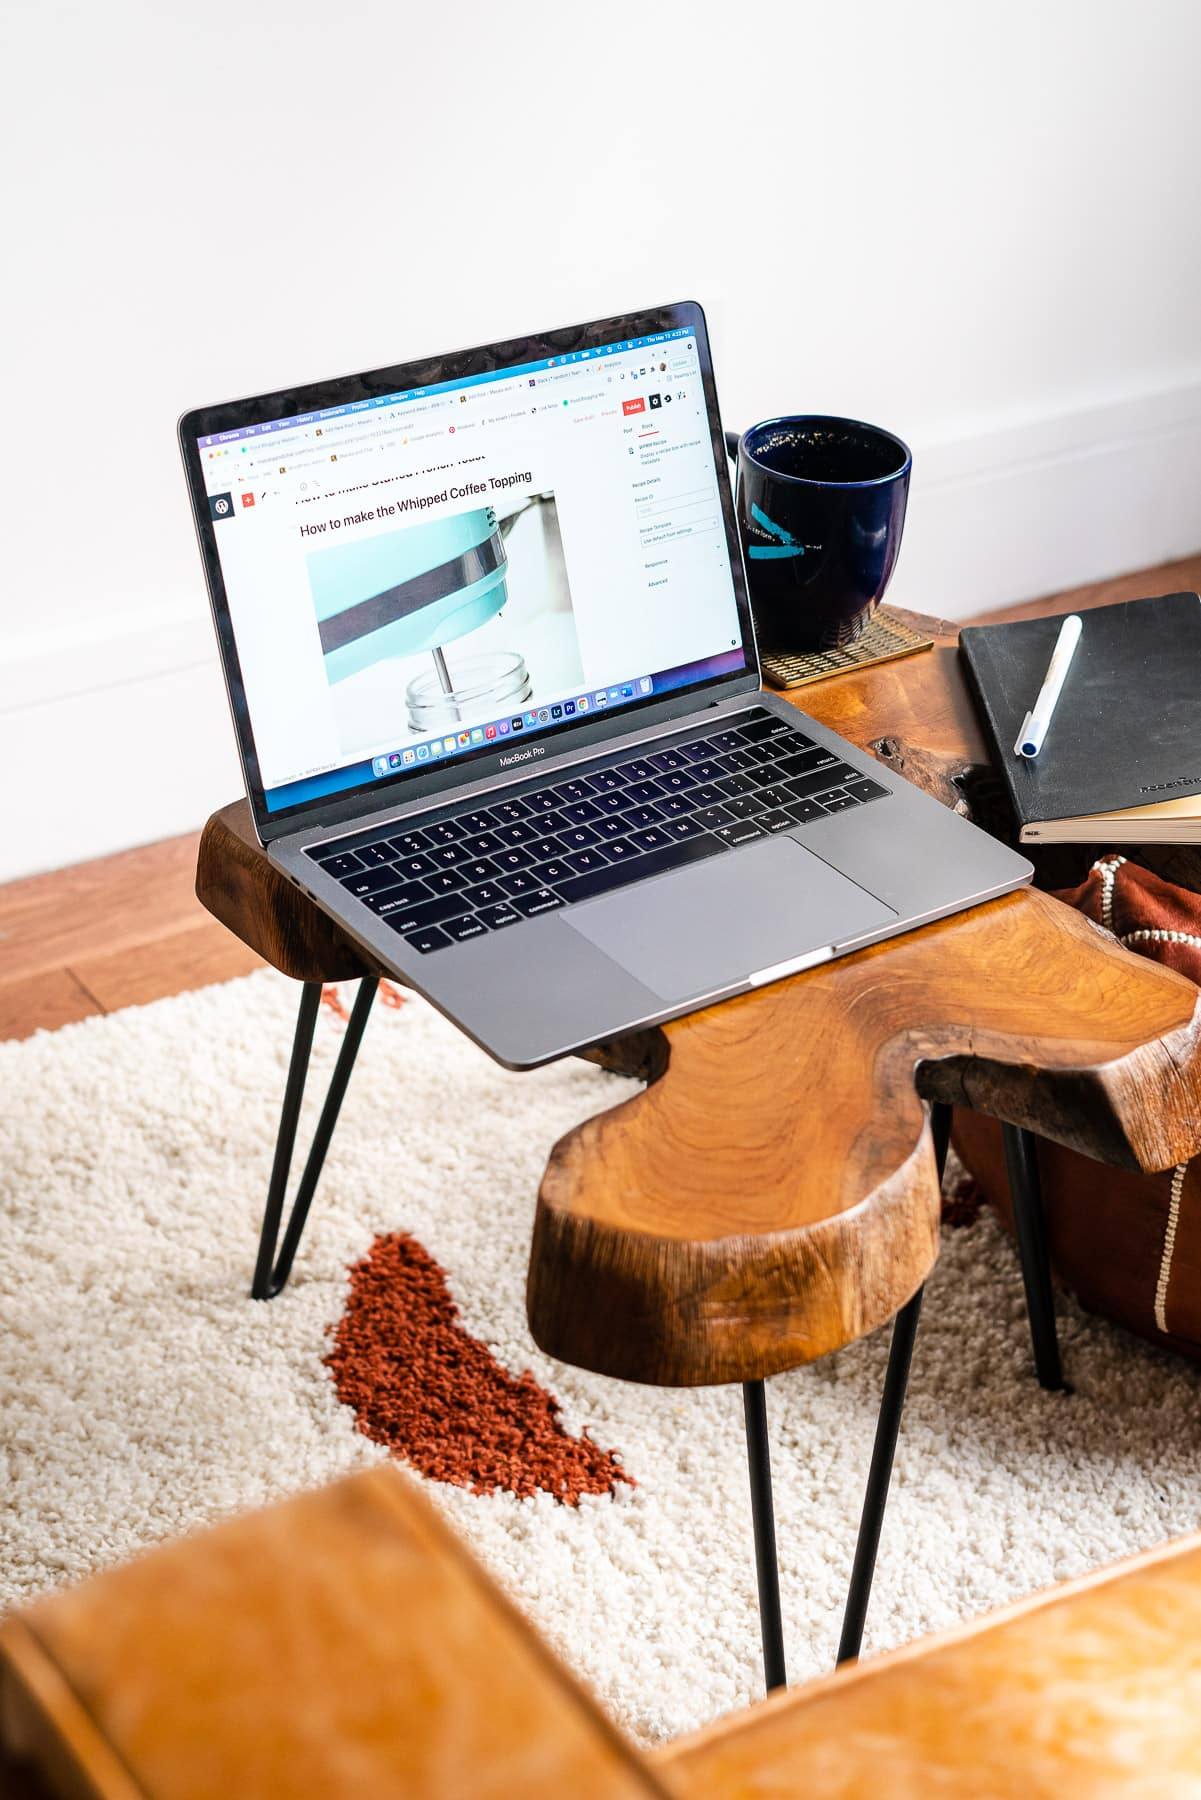 MacBook Pro with WordPress.org on the screen on a Wooden Slice table with tea and a notebook